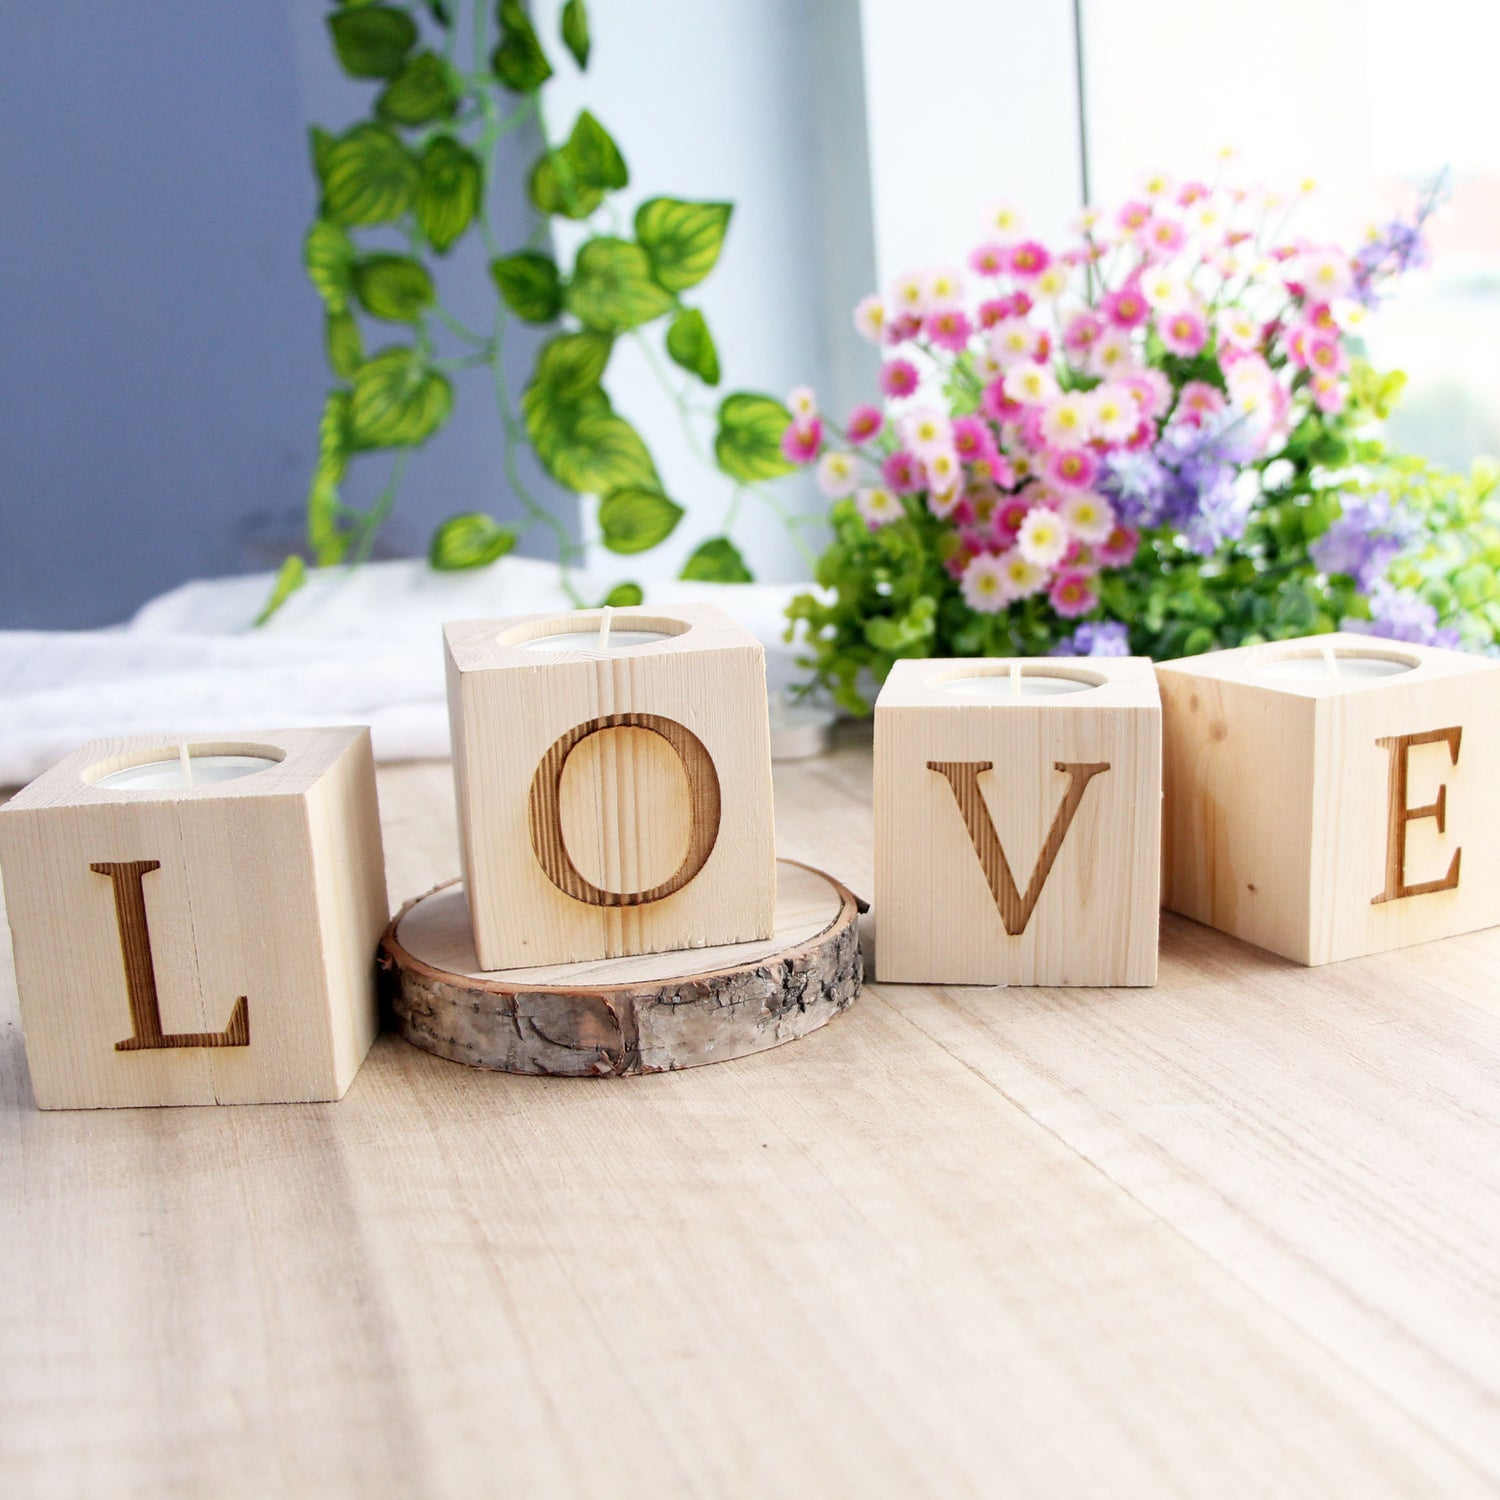 Add Love to any room with this 4 piece set of tealight wooden candle holders that spell LOVE.  Simple but stylish, these wooden candle holders will be a great accent to sit on top of your fireplace mantle, bedroom dresser, kitchen counter or bathroom shelf.  Since they are made from wood, some irregularities in wood grain are expected, which adds to the country charm of this set!